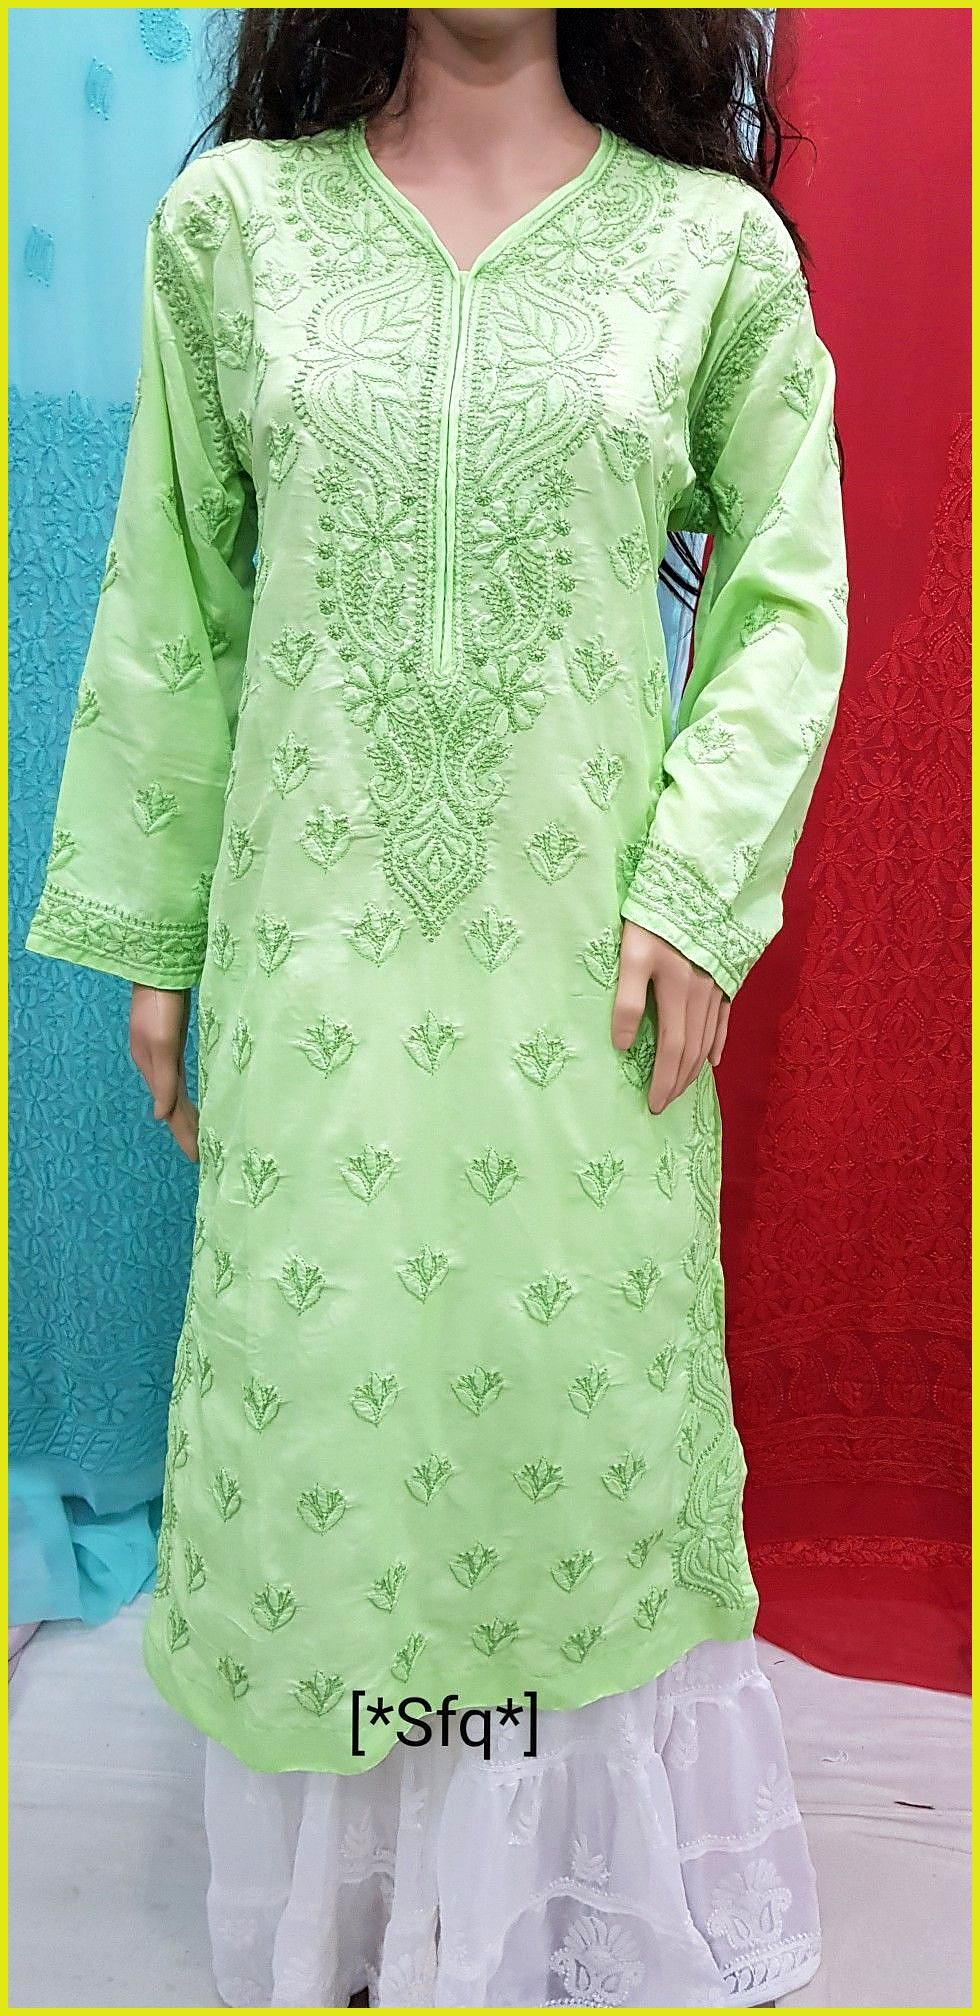 Muslim Fabric Kurtis Sfq  Chikankari Lucknowi Work shararadesigns Hand Emboridery Work Ladies Kurta s Sharara Design 2019-20 shararadesigns Mus  Muslim Fabric Kurtis Sfq  Chikankari Lucknowi Work shararadesigns Hand Emboridery Work Ladies Kurta s Sharara Design 2019-20 shararadesigns Muslim Fabric Kurtis Sfq  Chikankari Lucknowi Work shararadesigns Hand Emboridery Work Ladies Kurta s You are in th #chikankari #design #emboridery #fabric #furnituredesignpakistani #kurtas #kurtis #ladies #lucknowi #shararadesigns